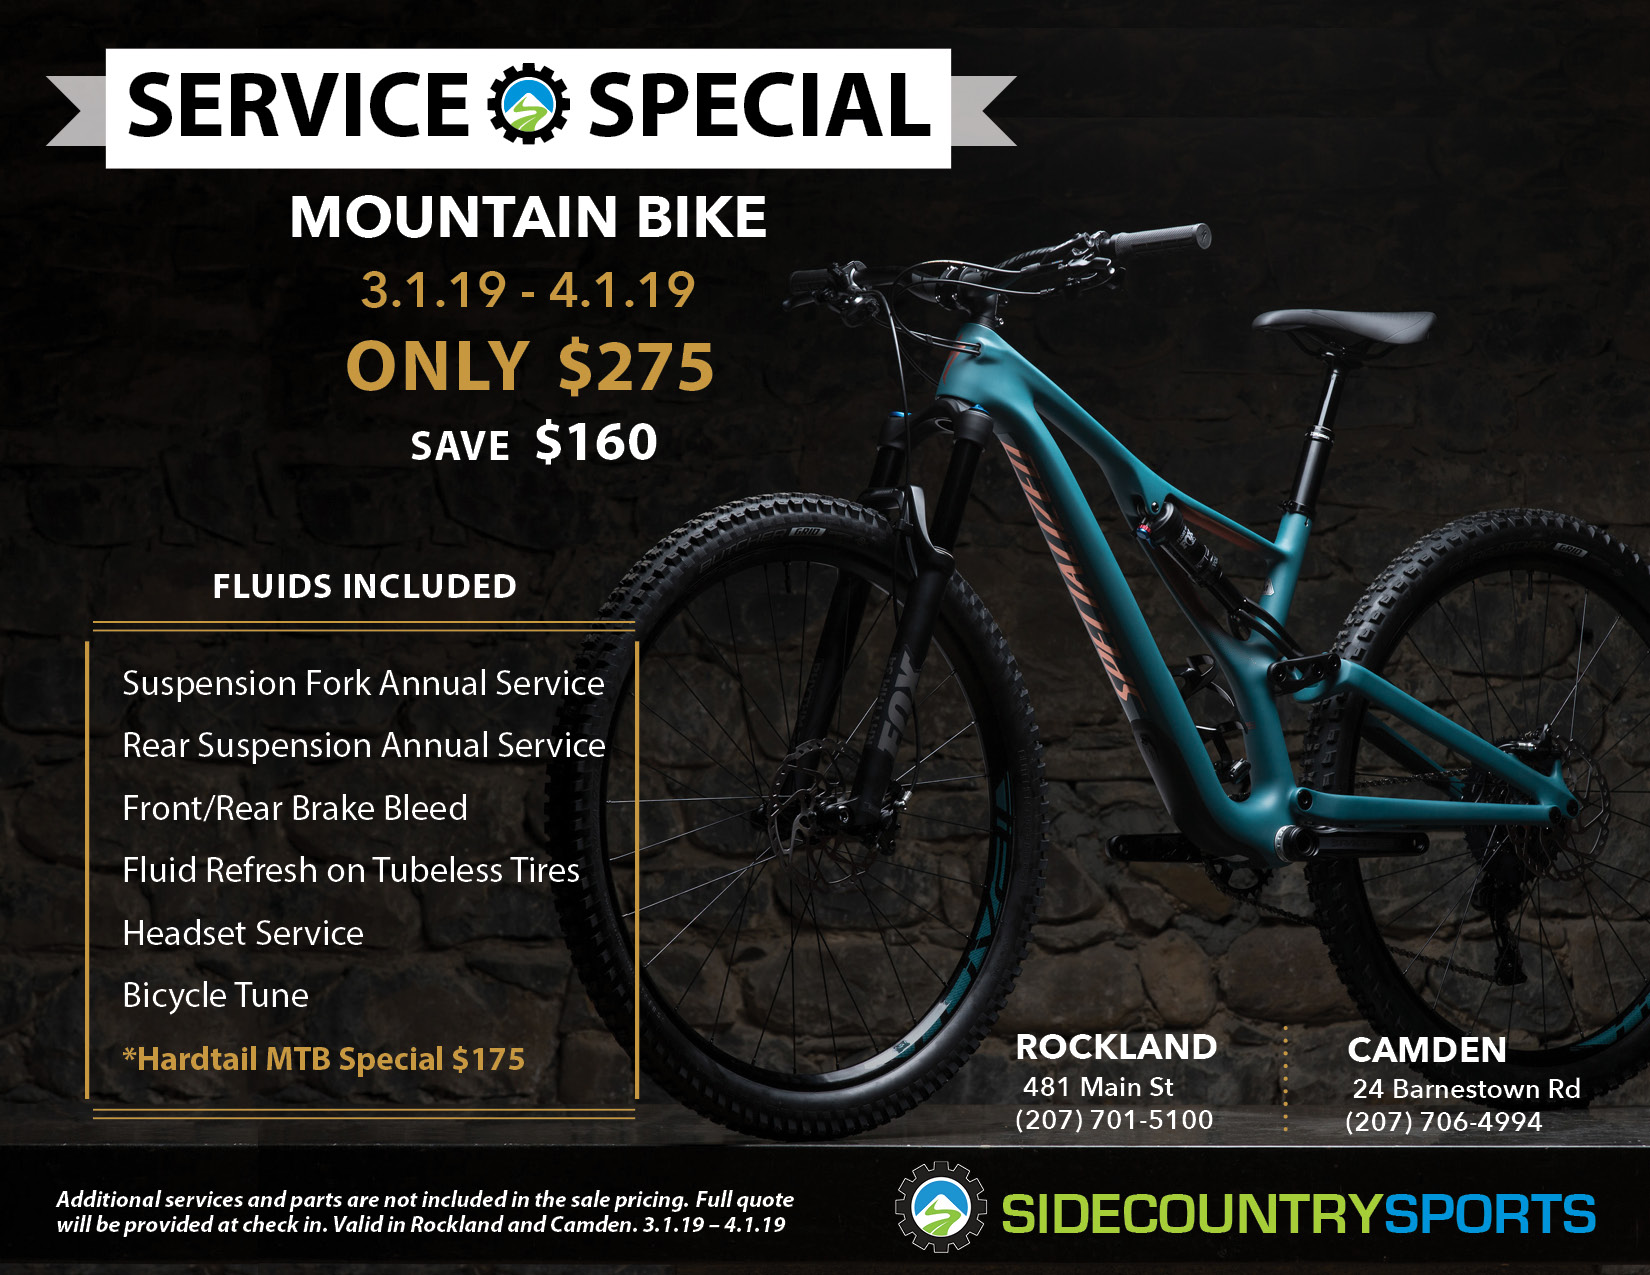 Mountain Bike Service Special